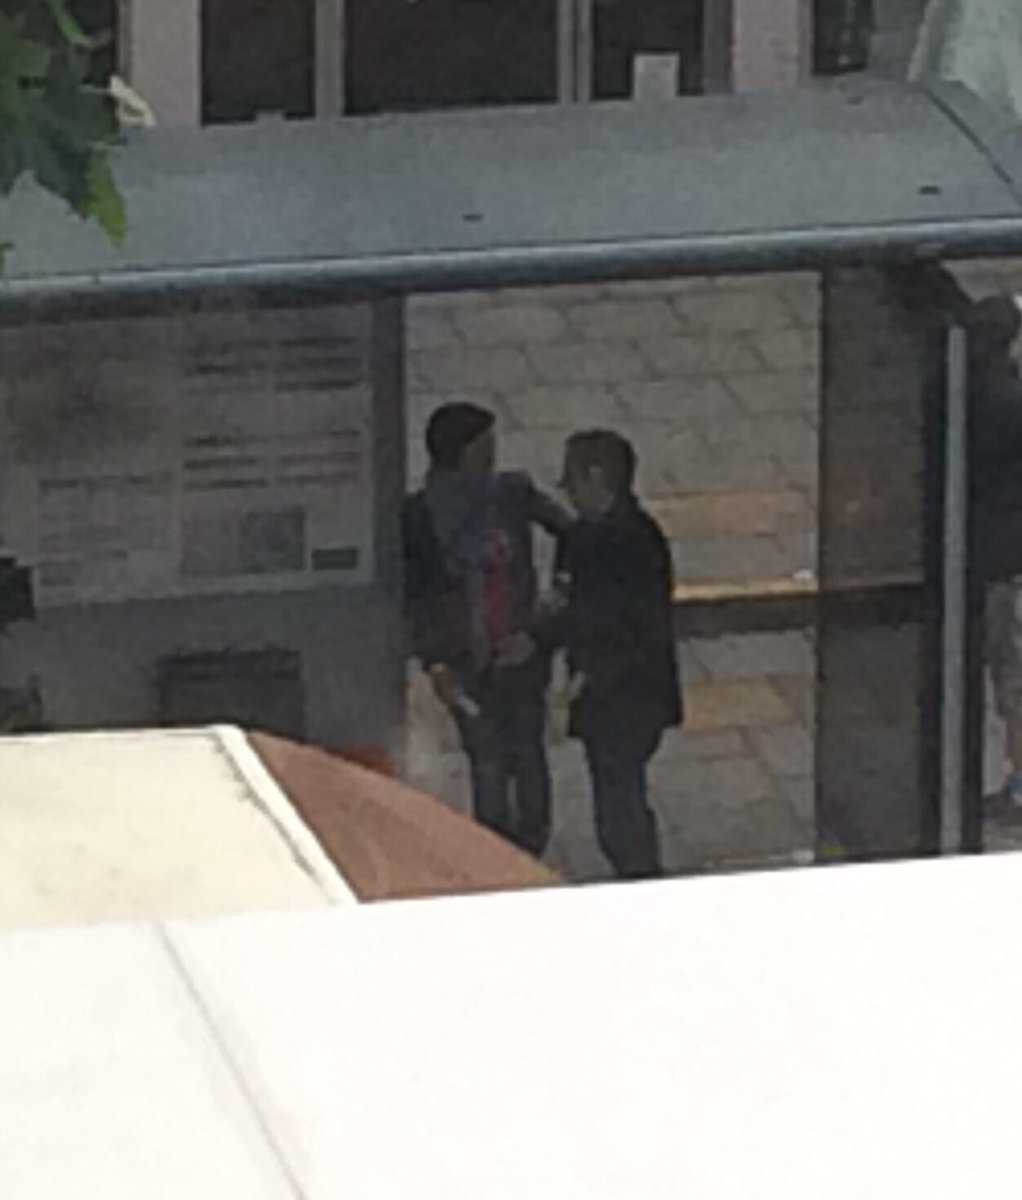 Blurry photo of Martin Freeman possibly filming Sherlock outside of @OasisCollege for anyone asking. https://t.co/60NsmoWTUi